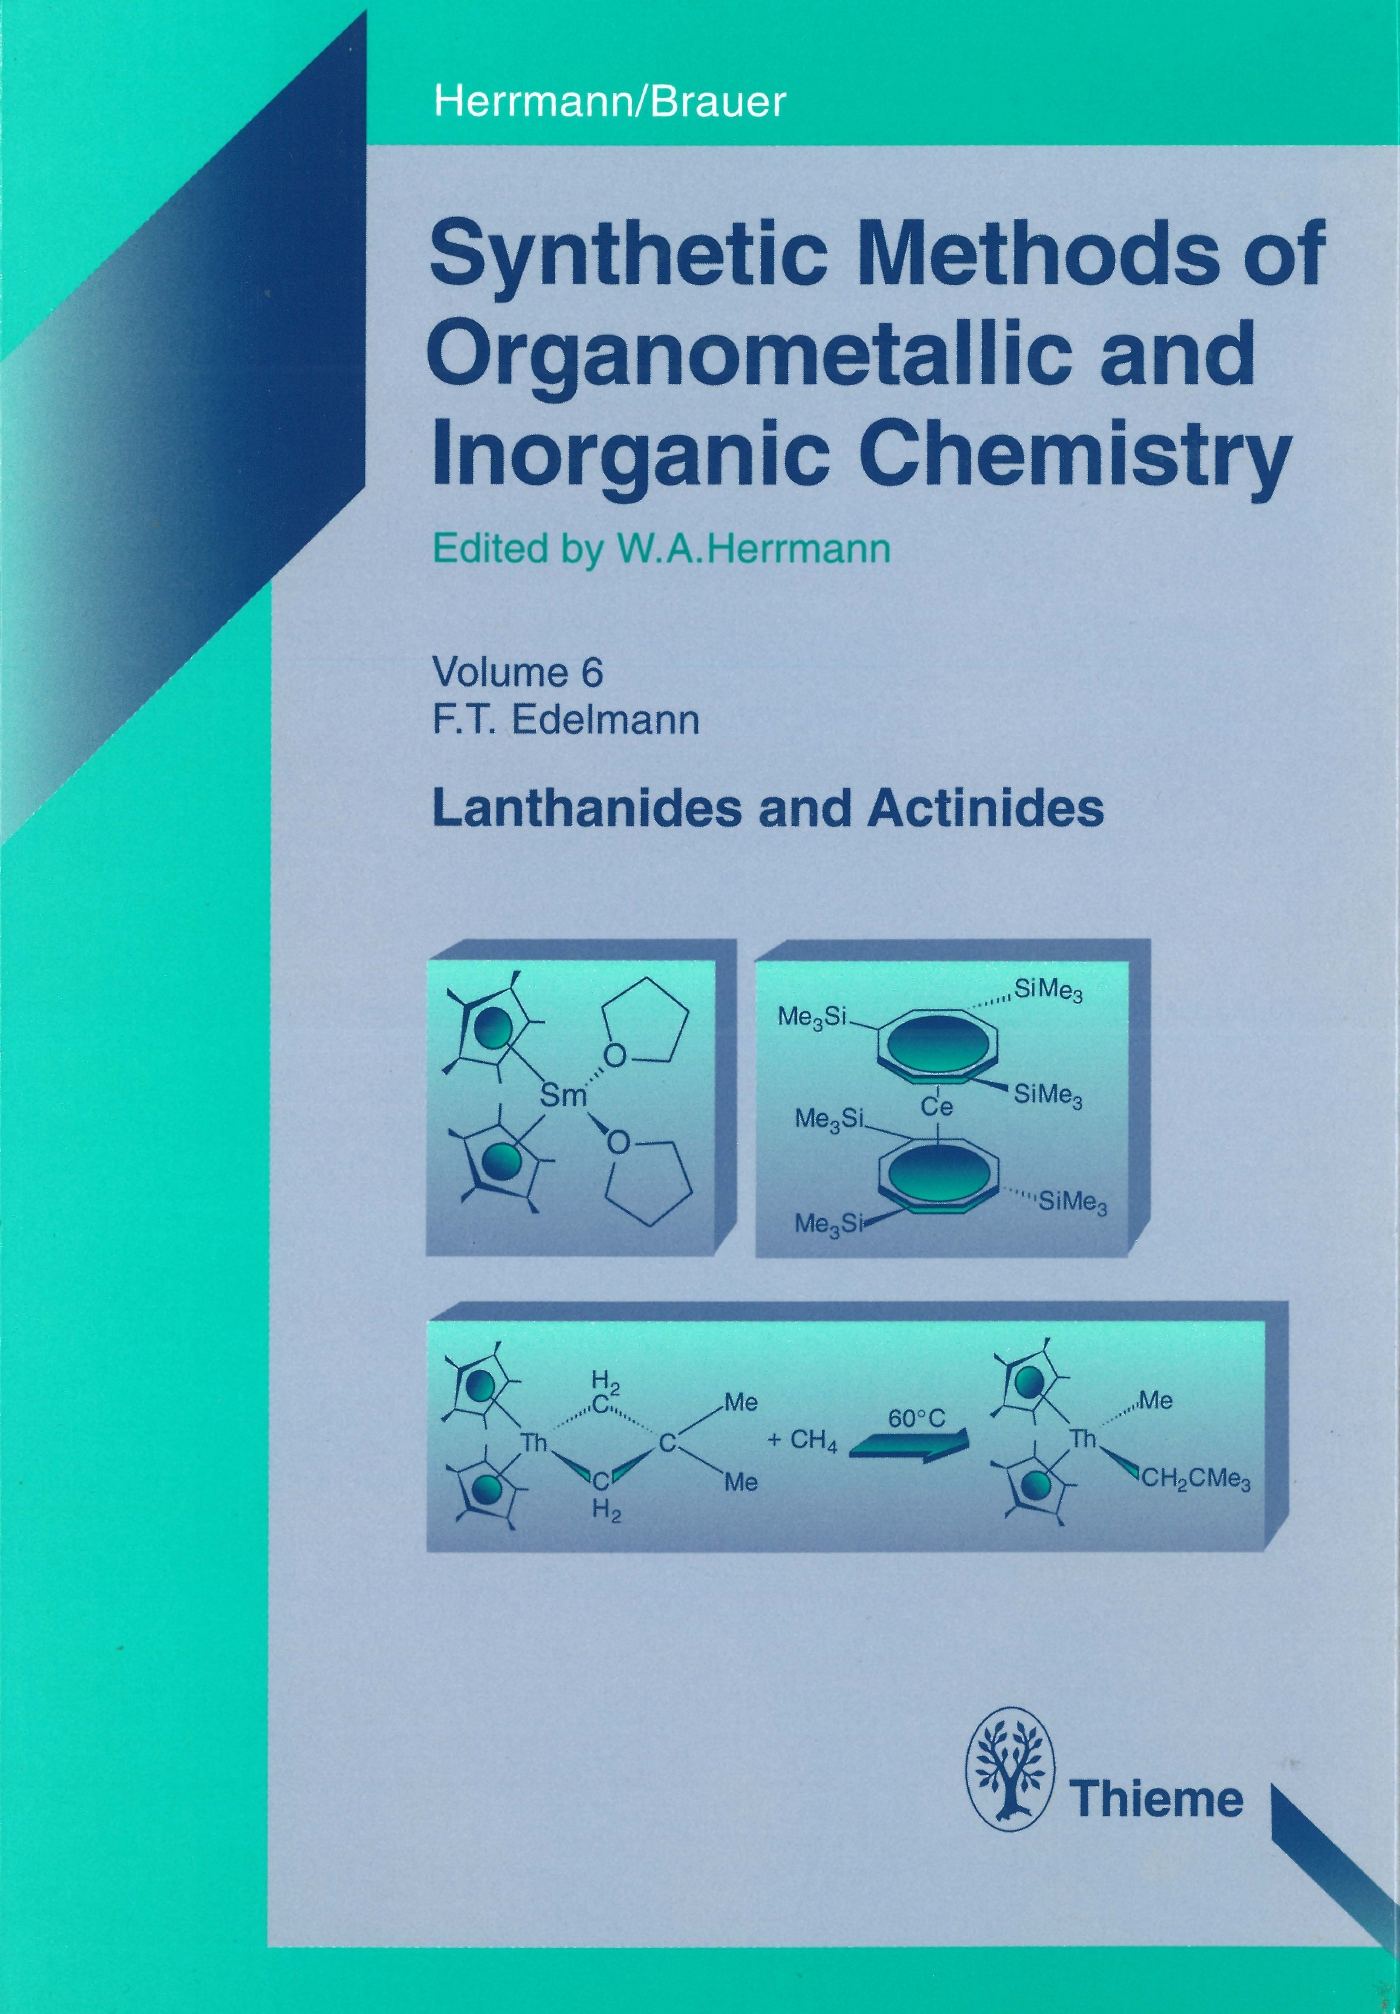 Synthetic Methods of Organometallic and Inorganic Chemistry, Volume 6, 1997